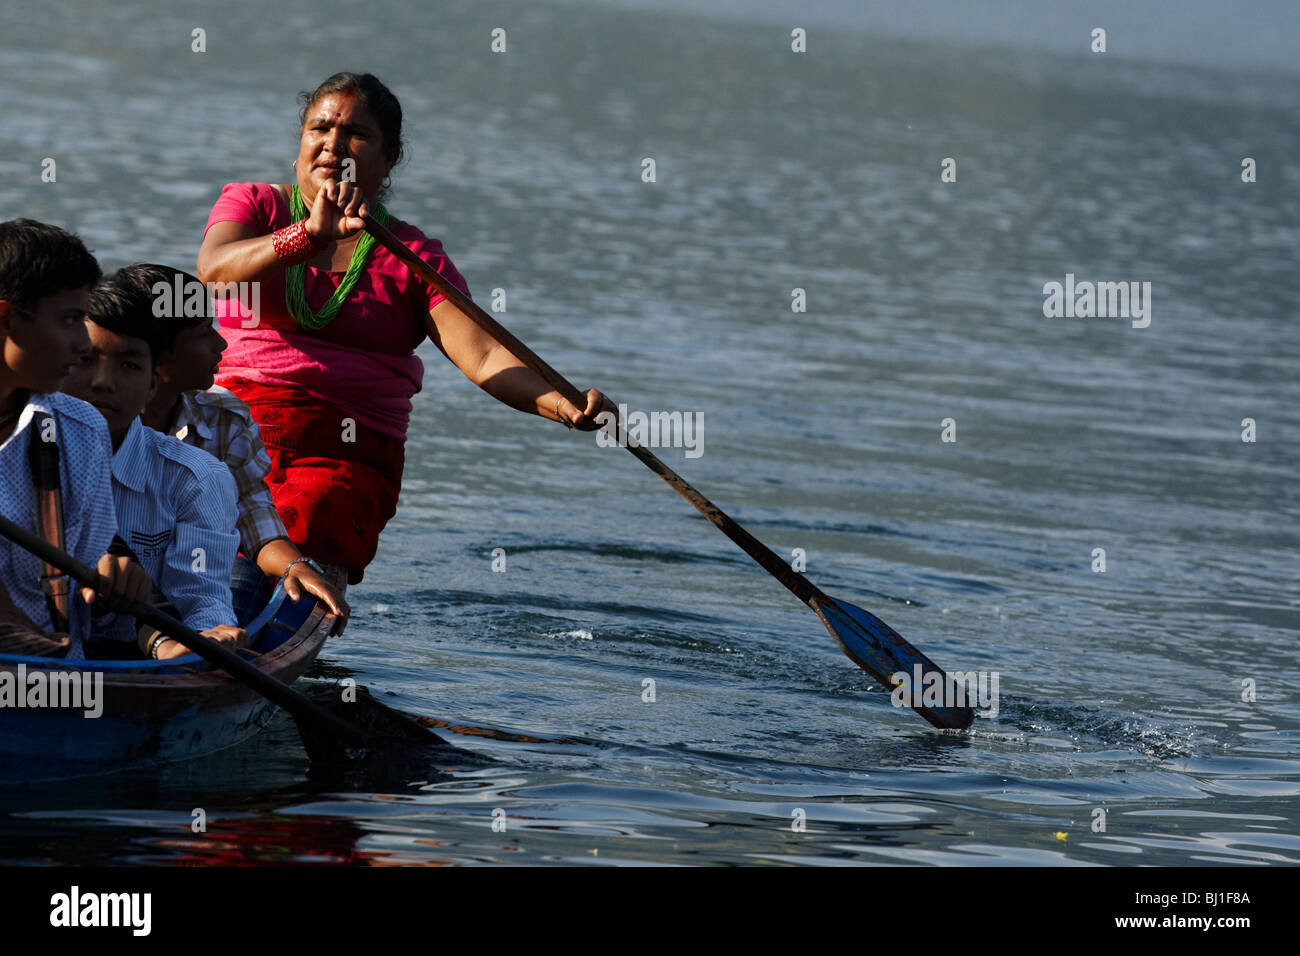 A woman steers a canoe on Pewha Lake in Pokhara, Nepal on Monday October 26, 2009. - Stock Image